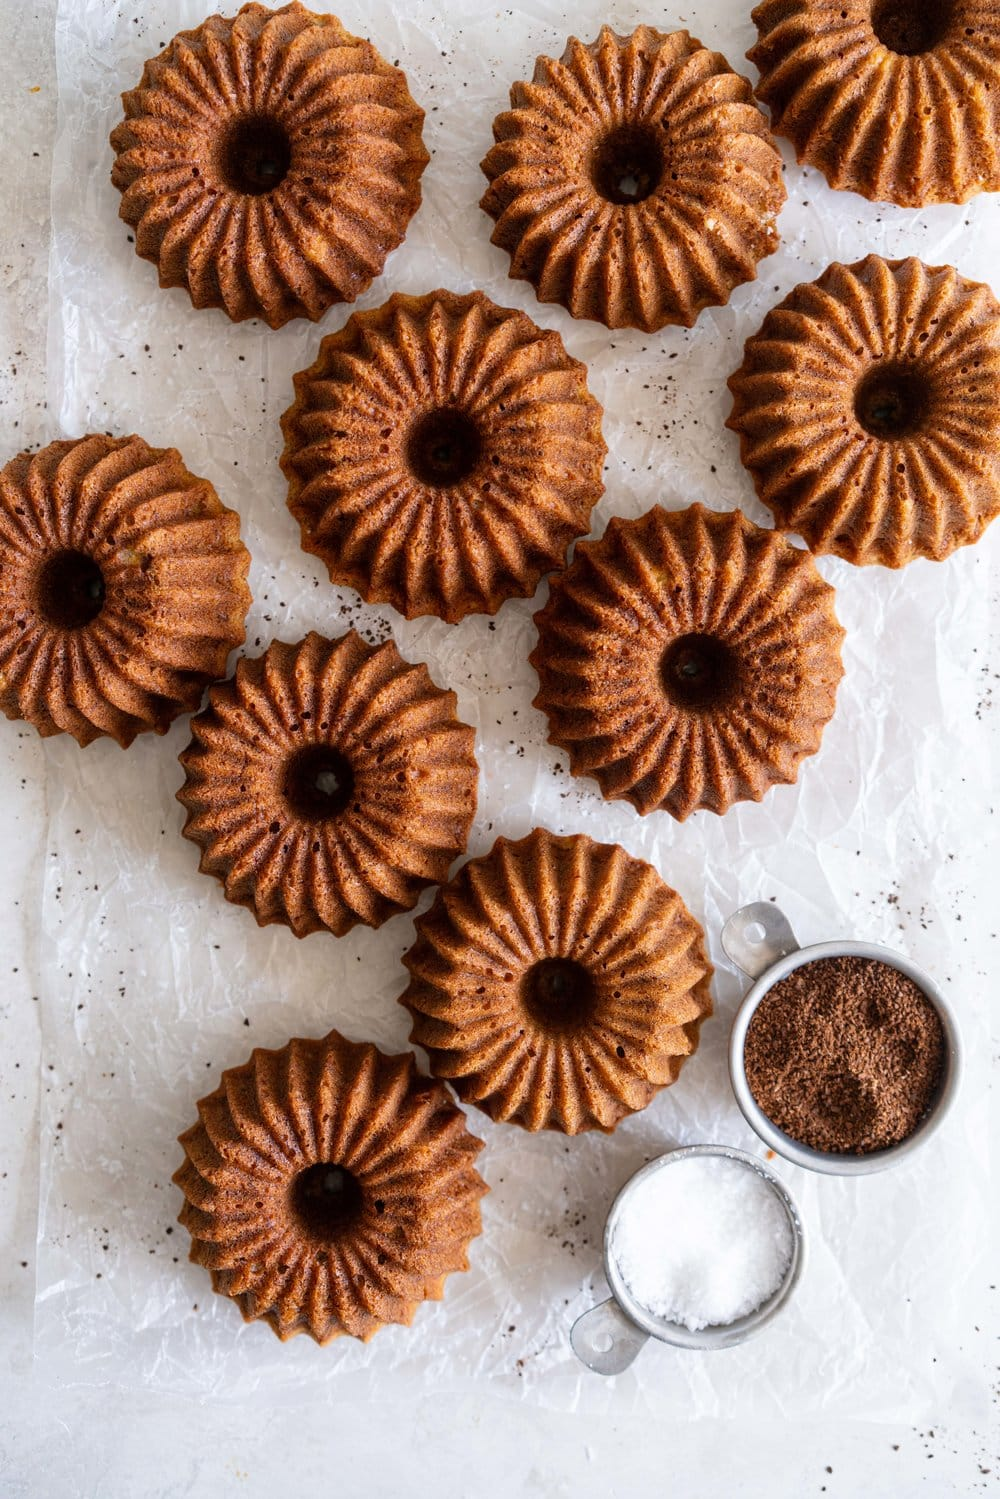 Banana mini bundt cakes, made in a mini brilliance pan, finished with a coffee infused salted caramel. The perfect treat to have with your coffee. #bananabundt #bananacake #coffeecaramel